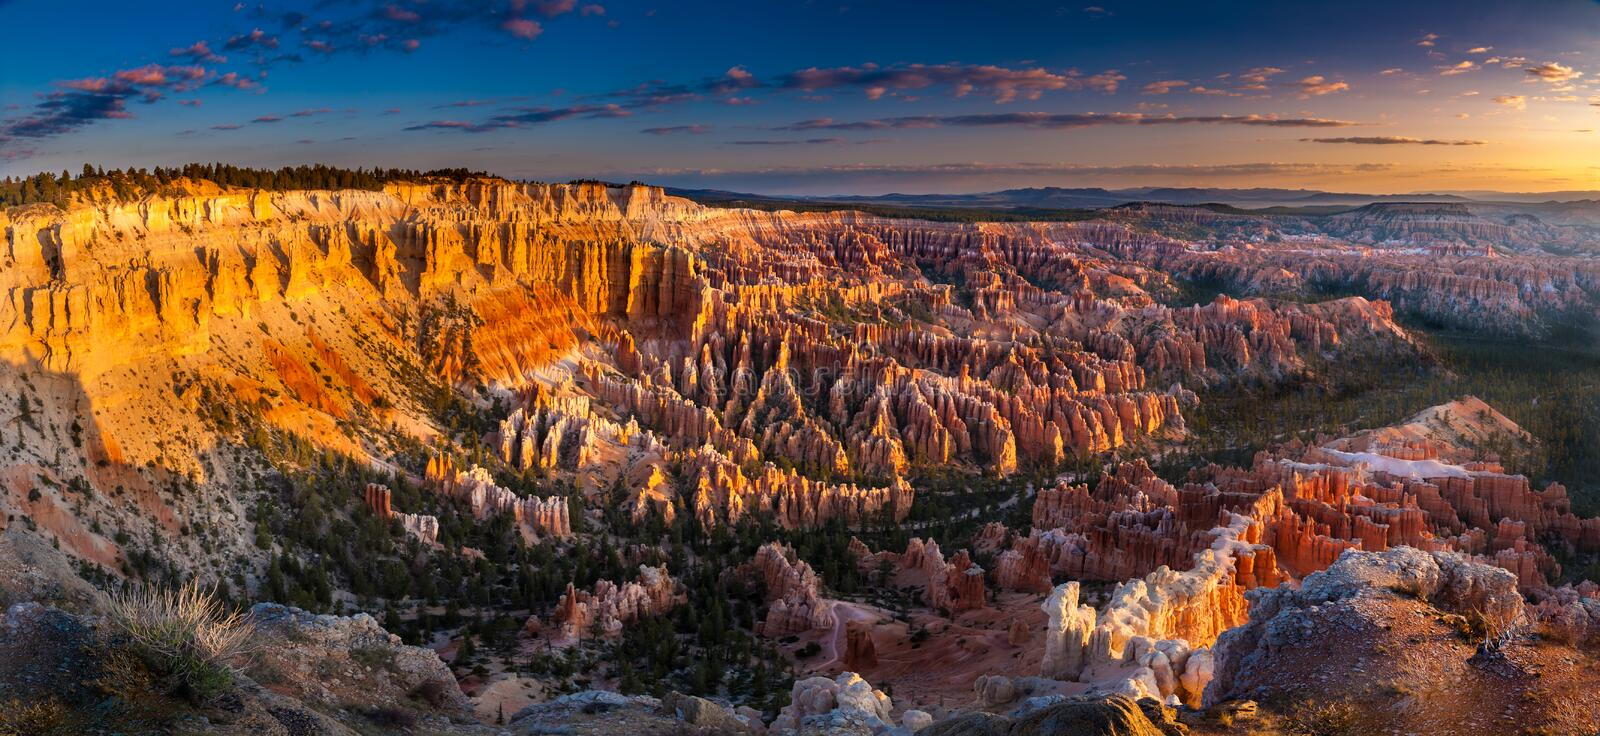 Bryce Canyon Early Morning royalty free stock photography